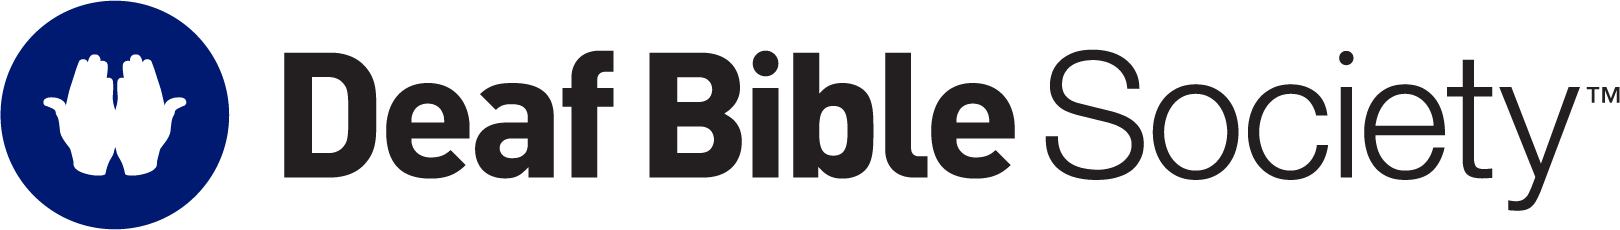 Deaf Bible Society Logo